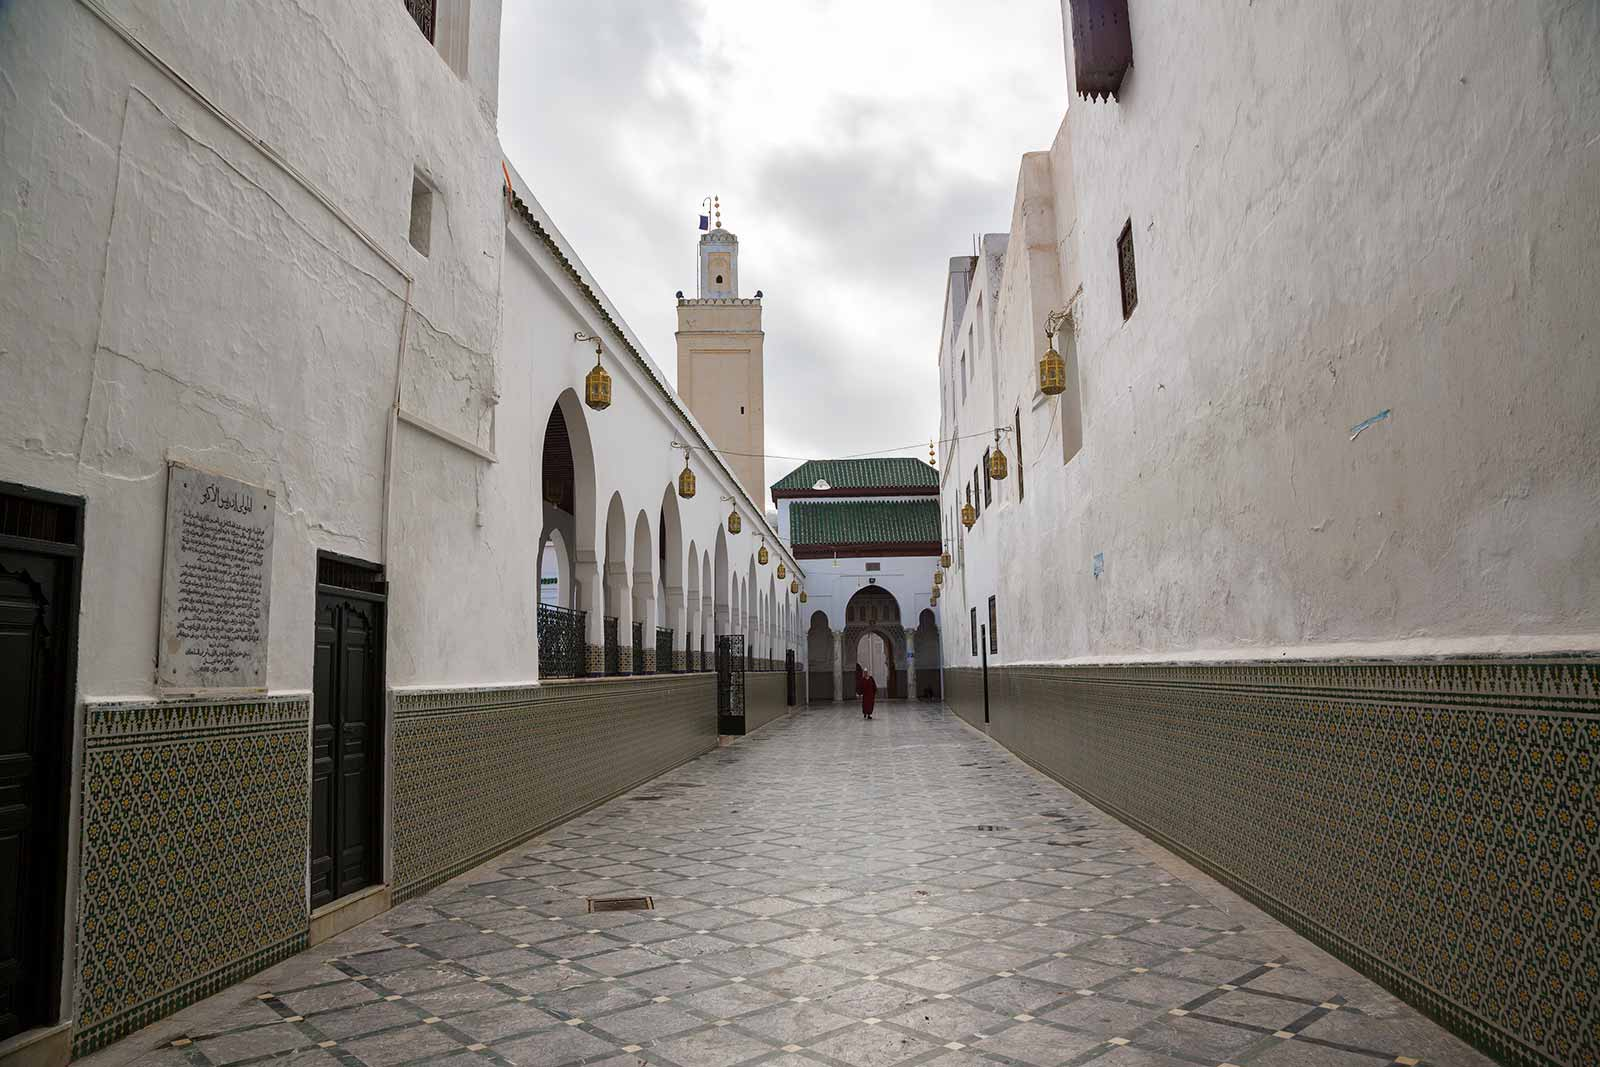 The Mosque and Mausoleum in Moulay Idriss.